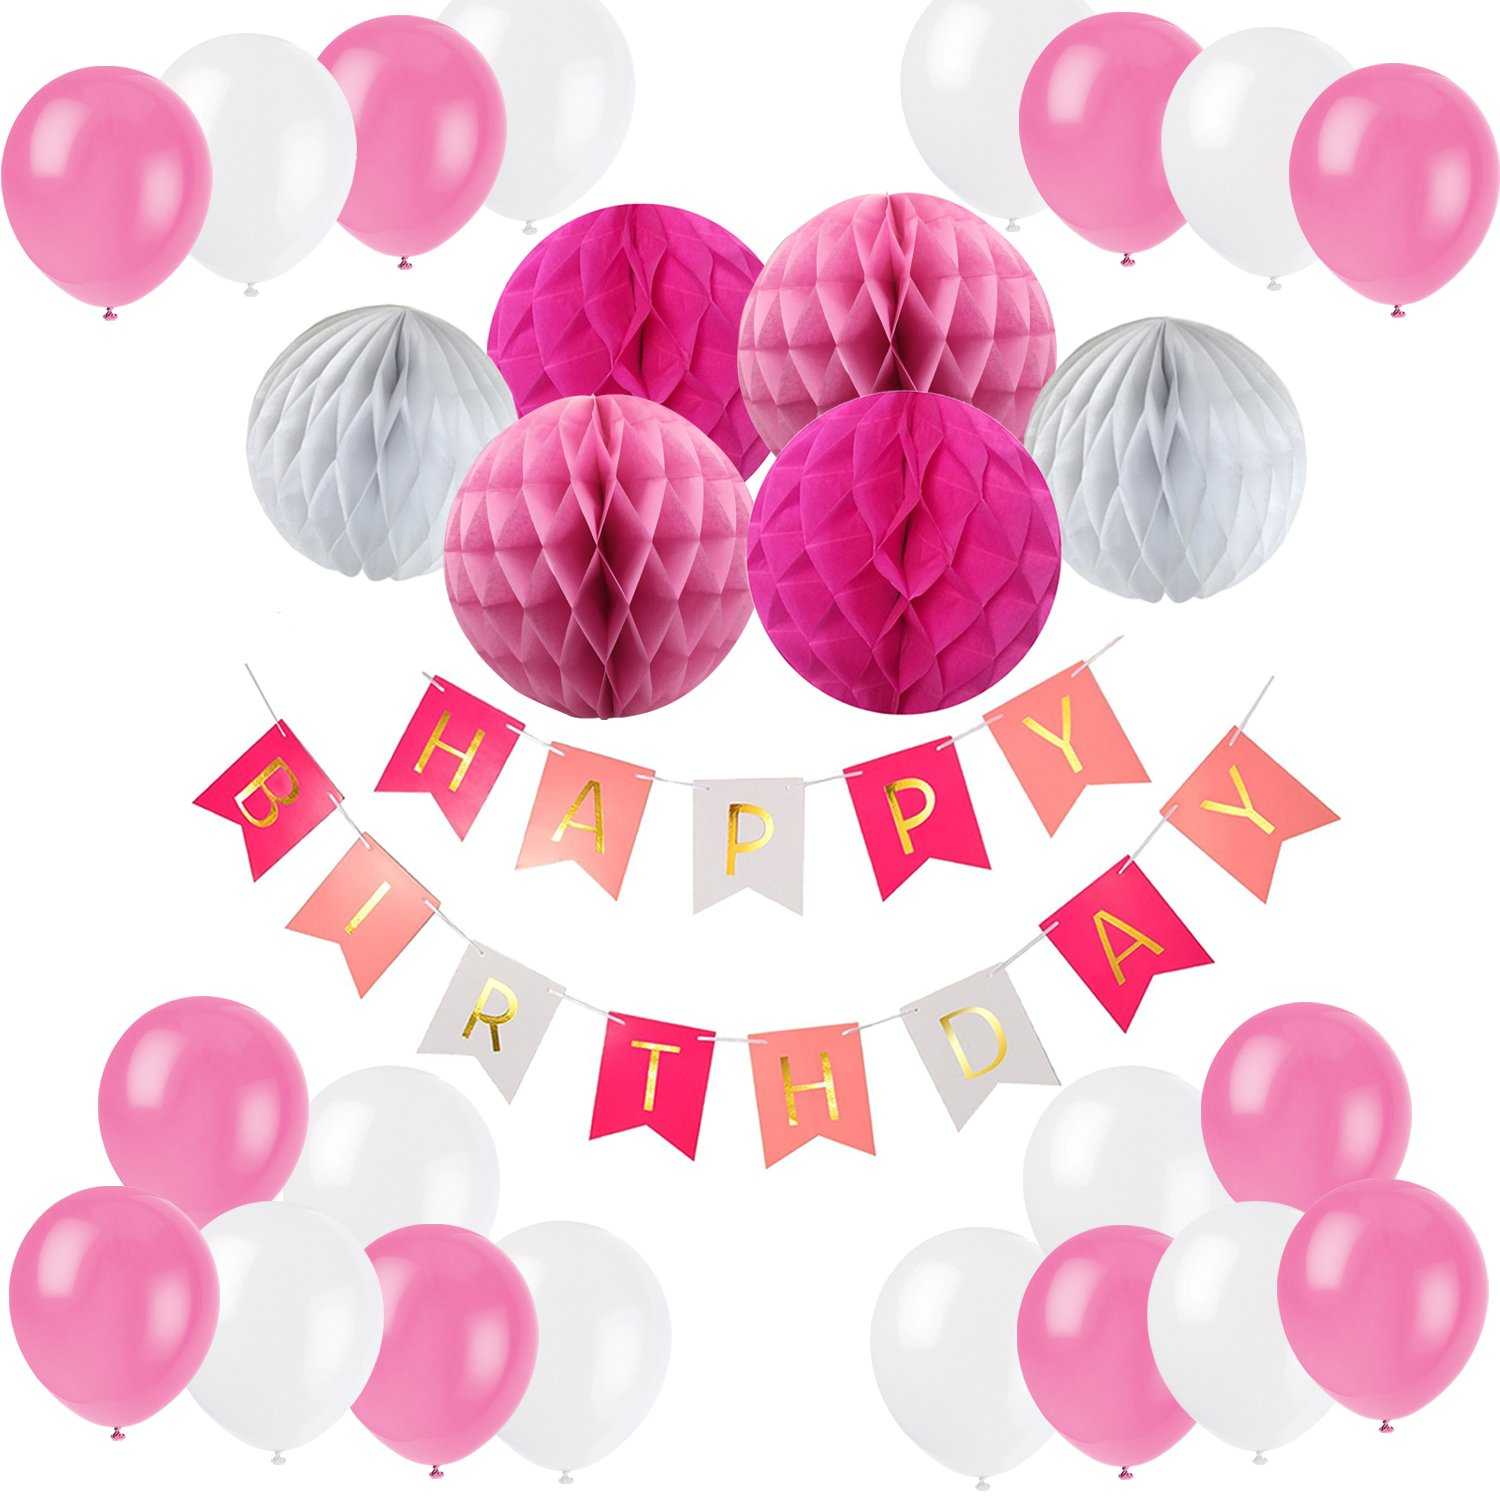 Recosis Happy Birthday Bunting Banner with 10 Pieces Latex Party Balloons and 6 Pieces Honeycomb Balls for Birthday Party Decorations - Blue